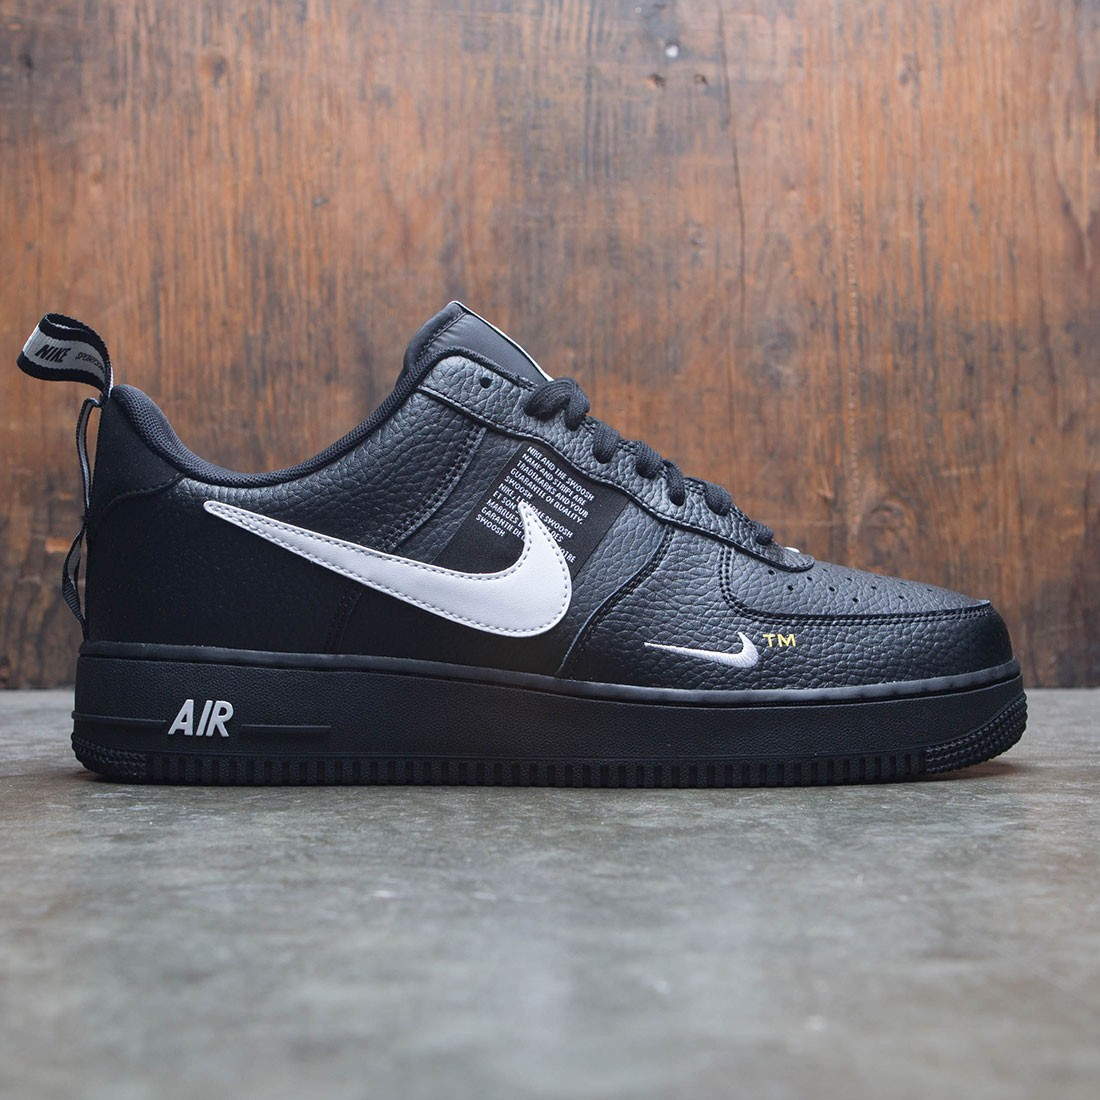 the latest 417b1 d7e94 nike men air force 1 07 lv8 utility black white black tour yellow